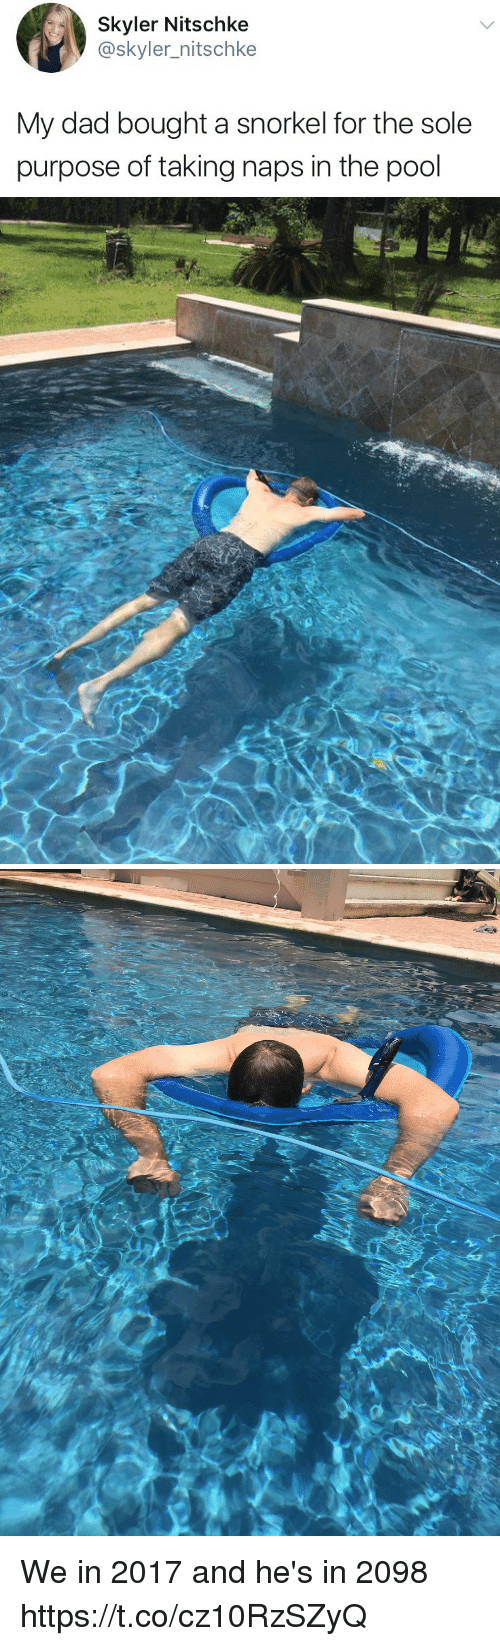 skyler: Skyler Nitschke  @skyler_nitschke  My dad bought a snorkel for the sole  purpose of taking naps in the pool We in 2017 and he's in 2098 https://t.co/cz10RzSZyQ